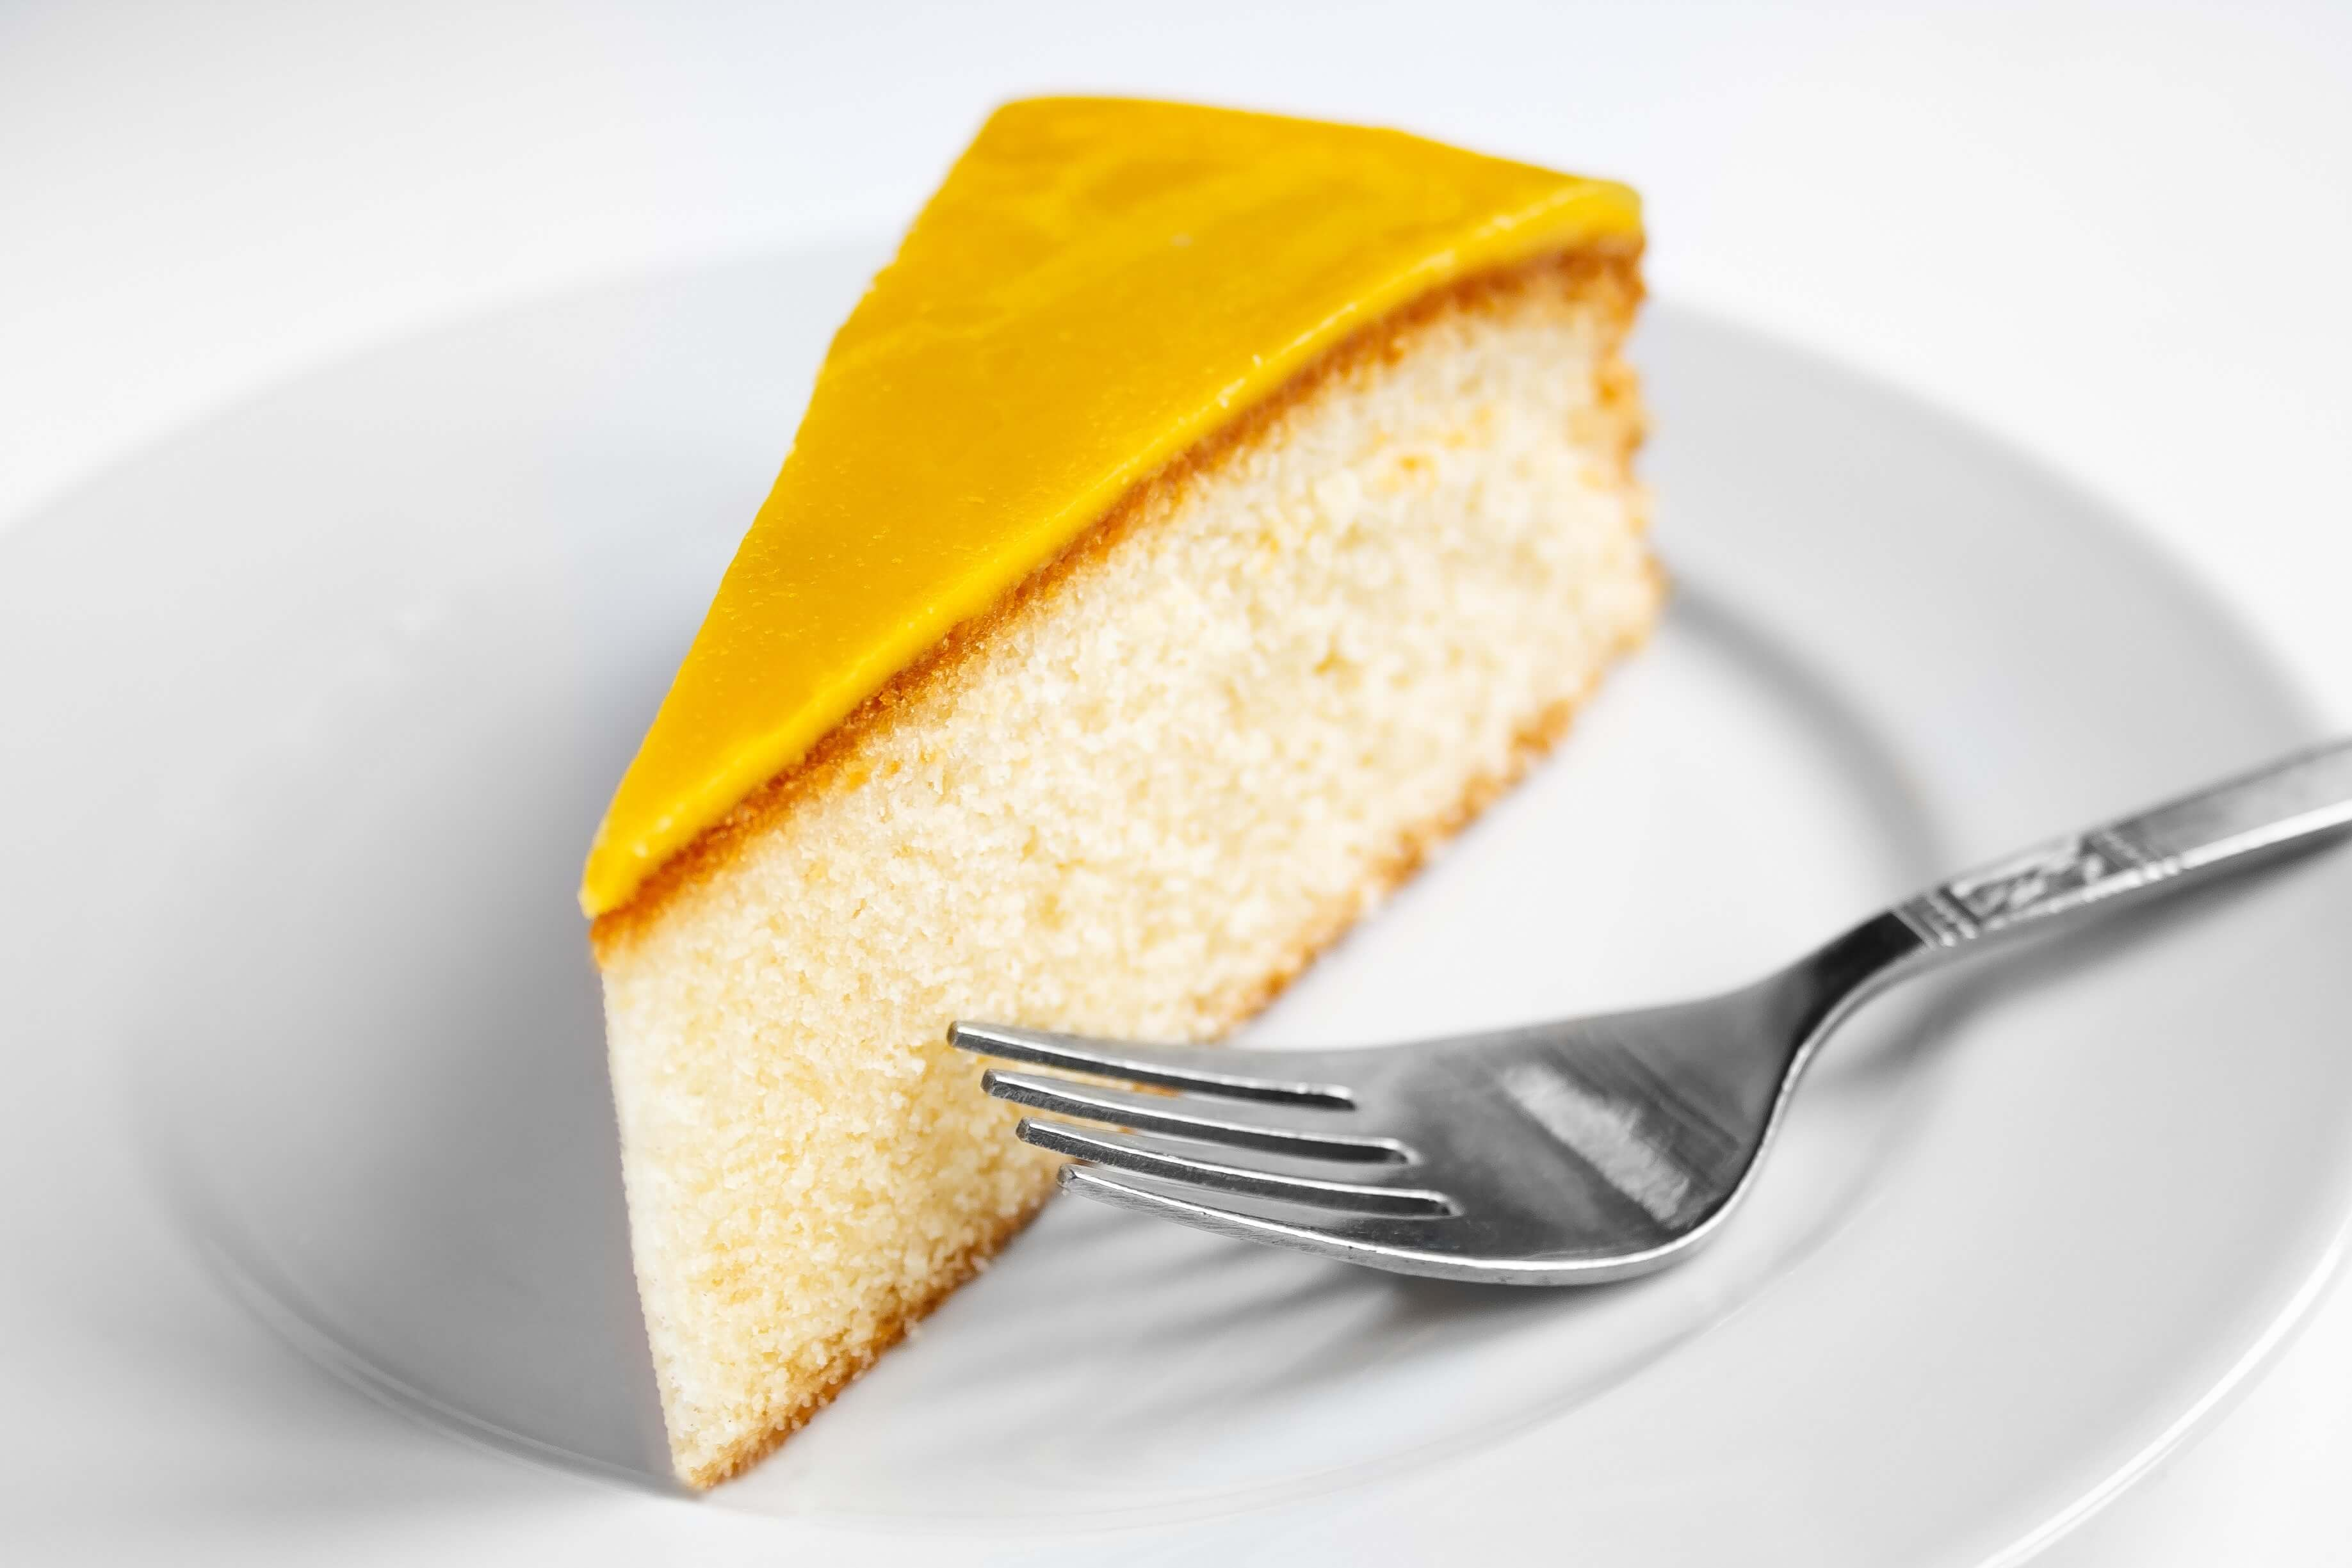 A slice of cake on a white plate with a fork